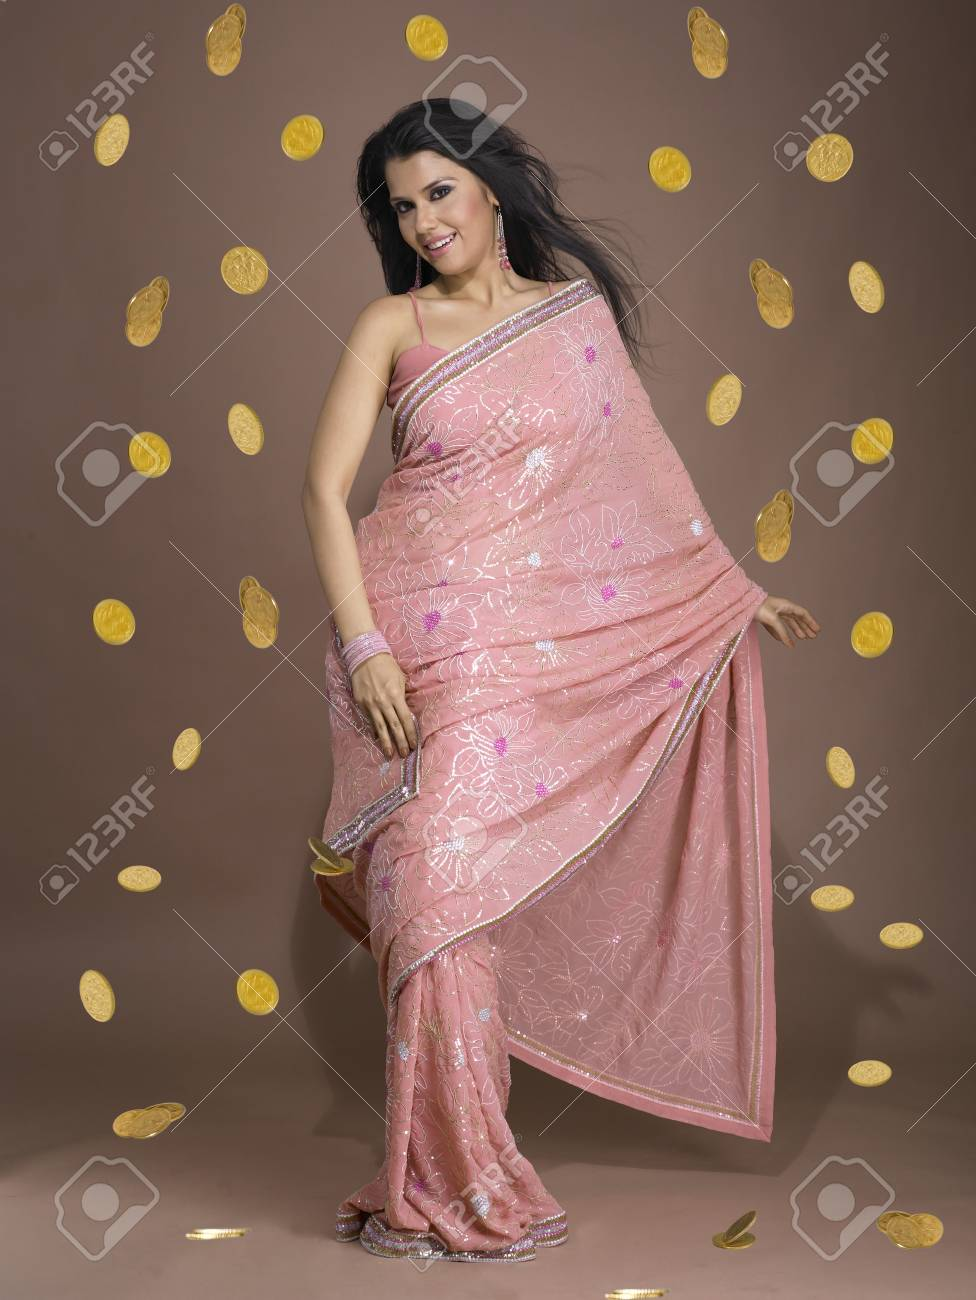 Girl In Sari With Shower Of Gold Coins All Around Her Stock Photo ...